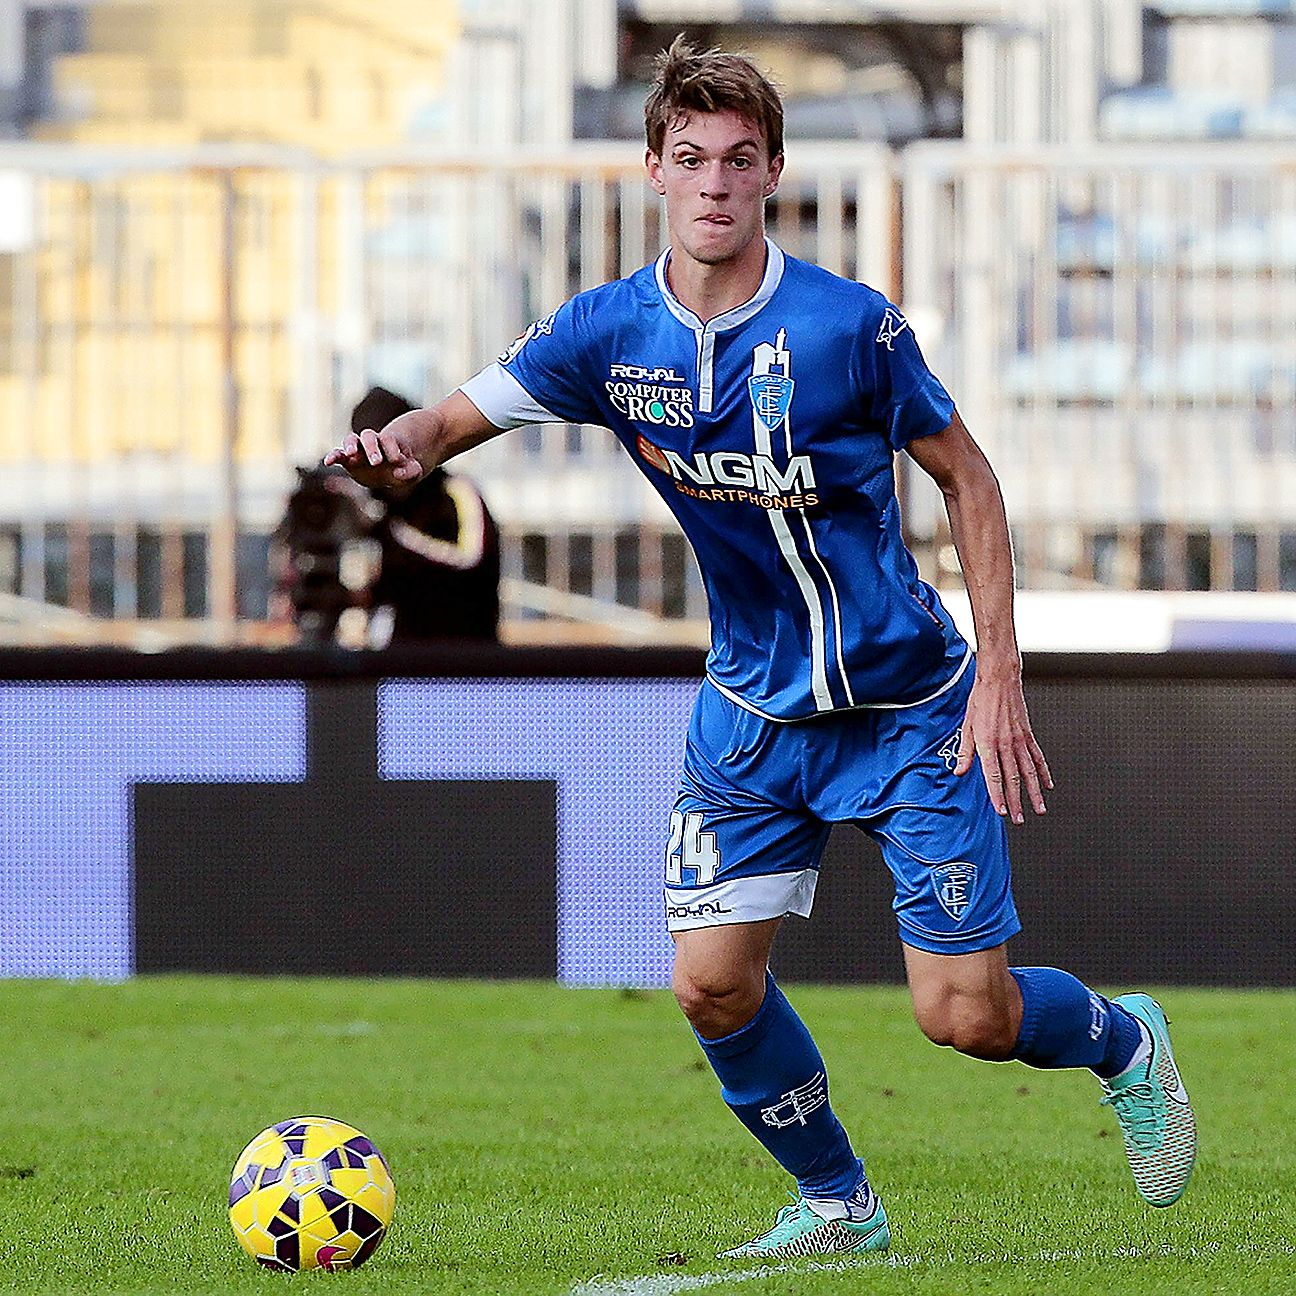 Daniele Rugani has all the ingredients to become the next great Italian defender.